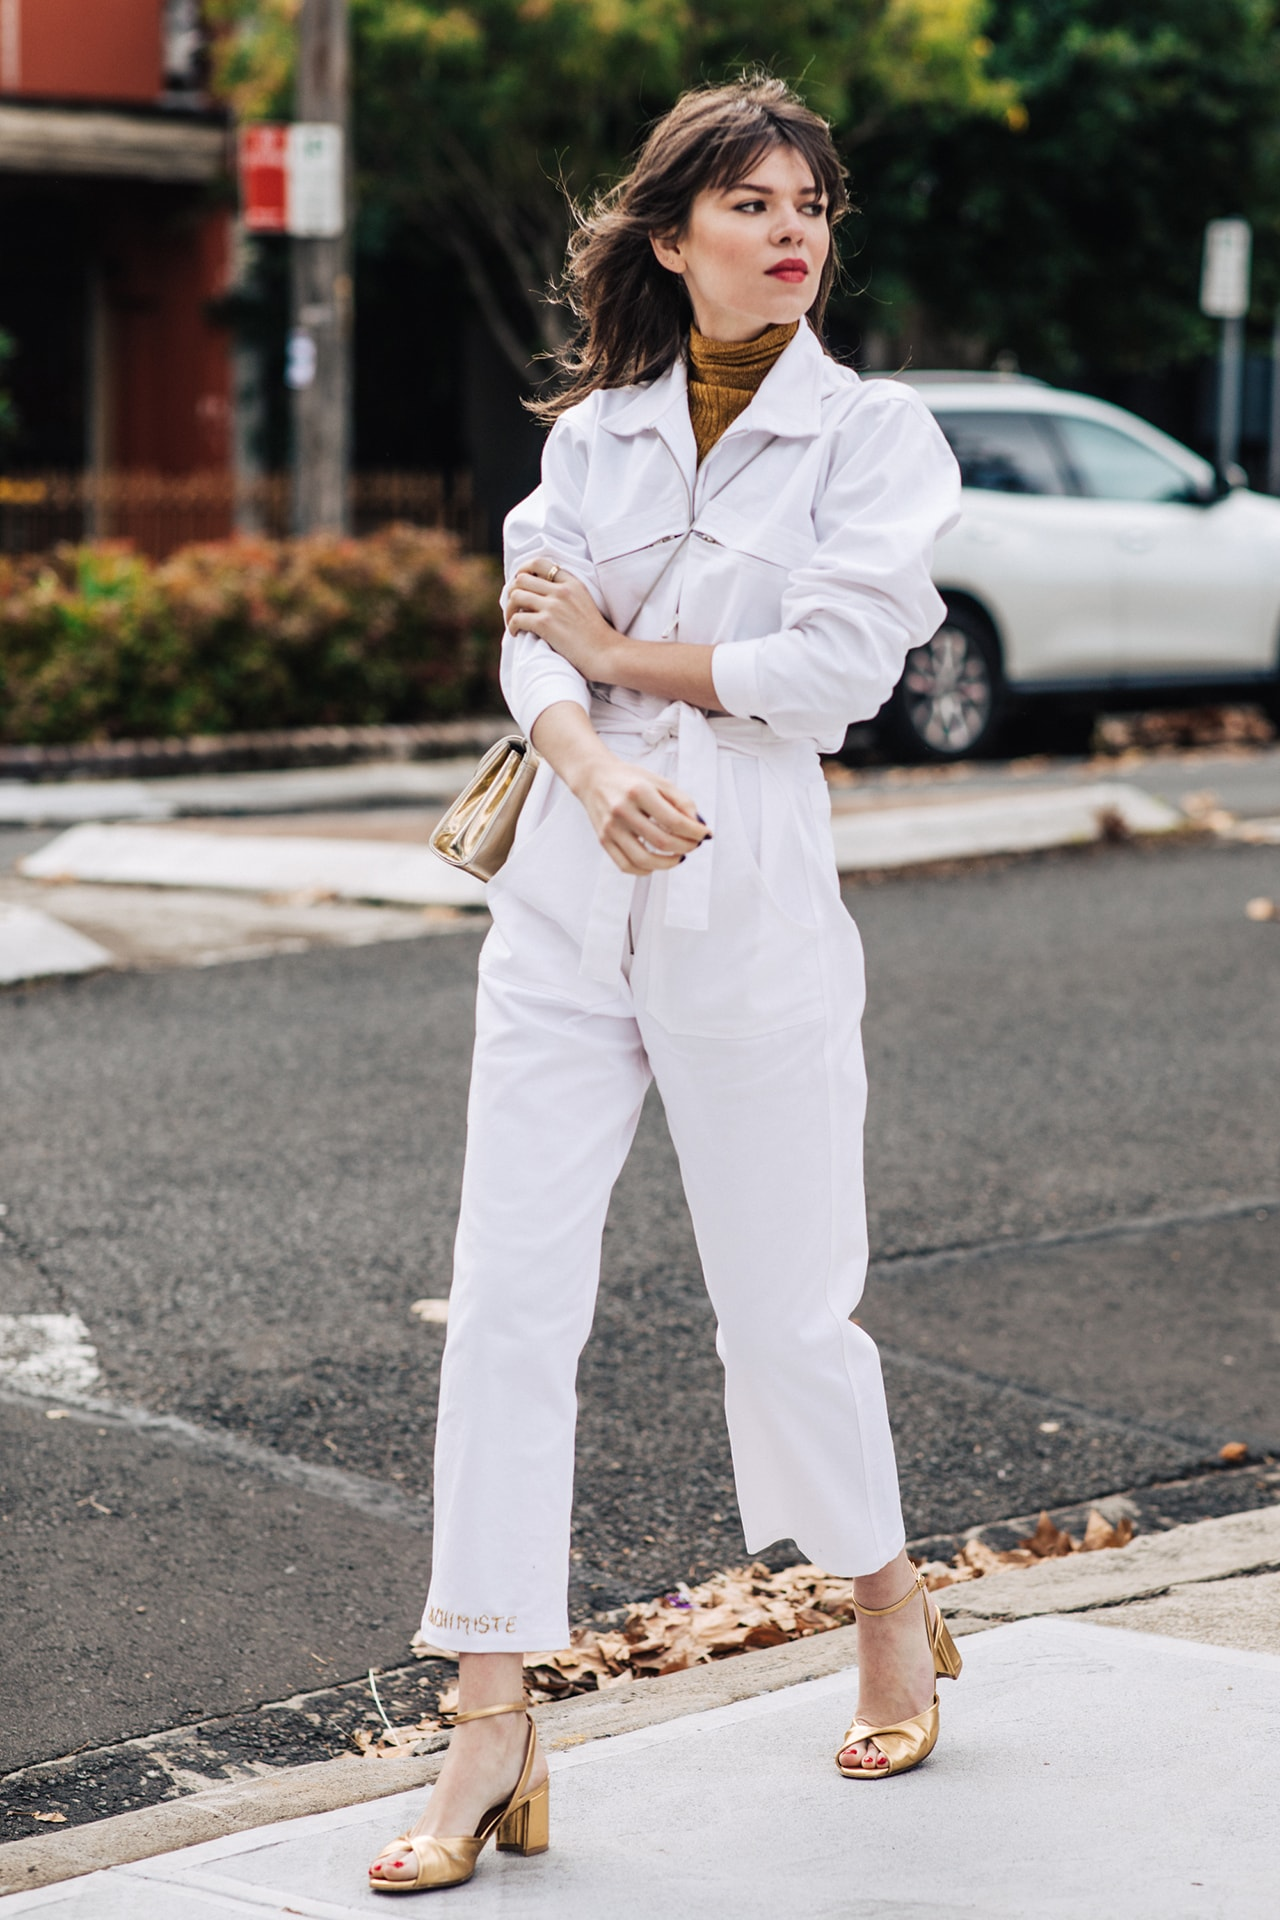 Style in the city: eight street style looks to inform your summer work wardrobe